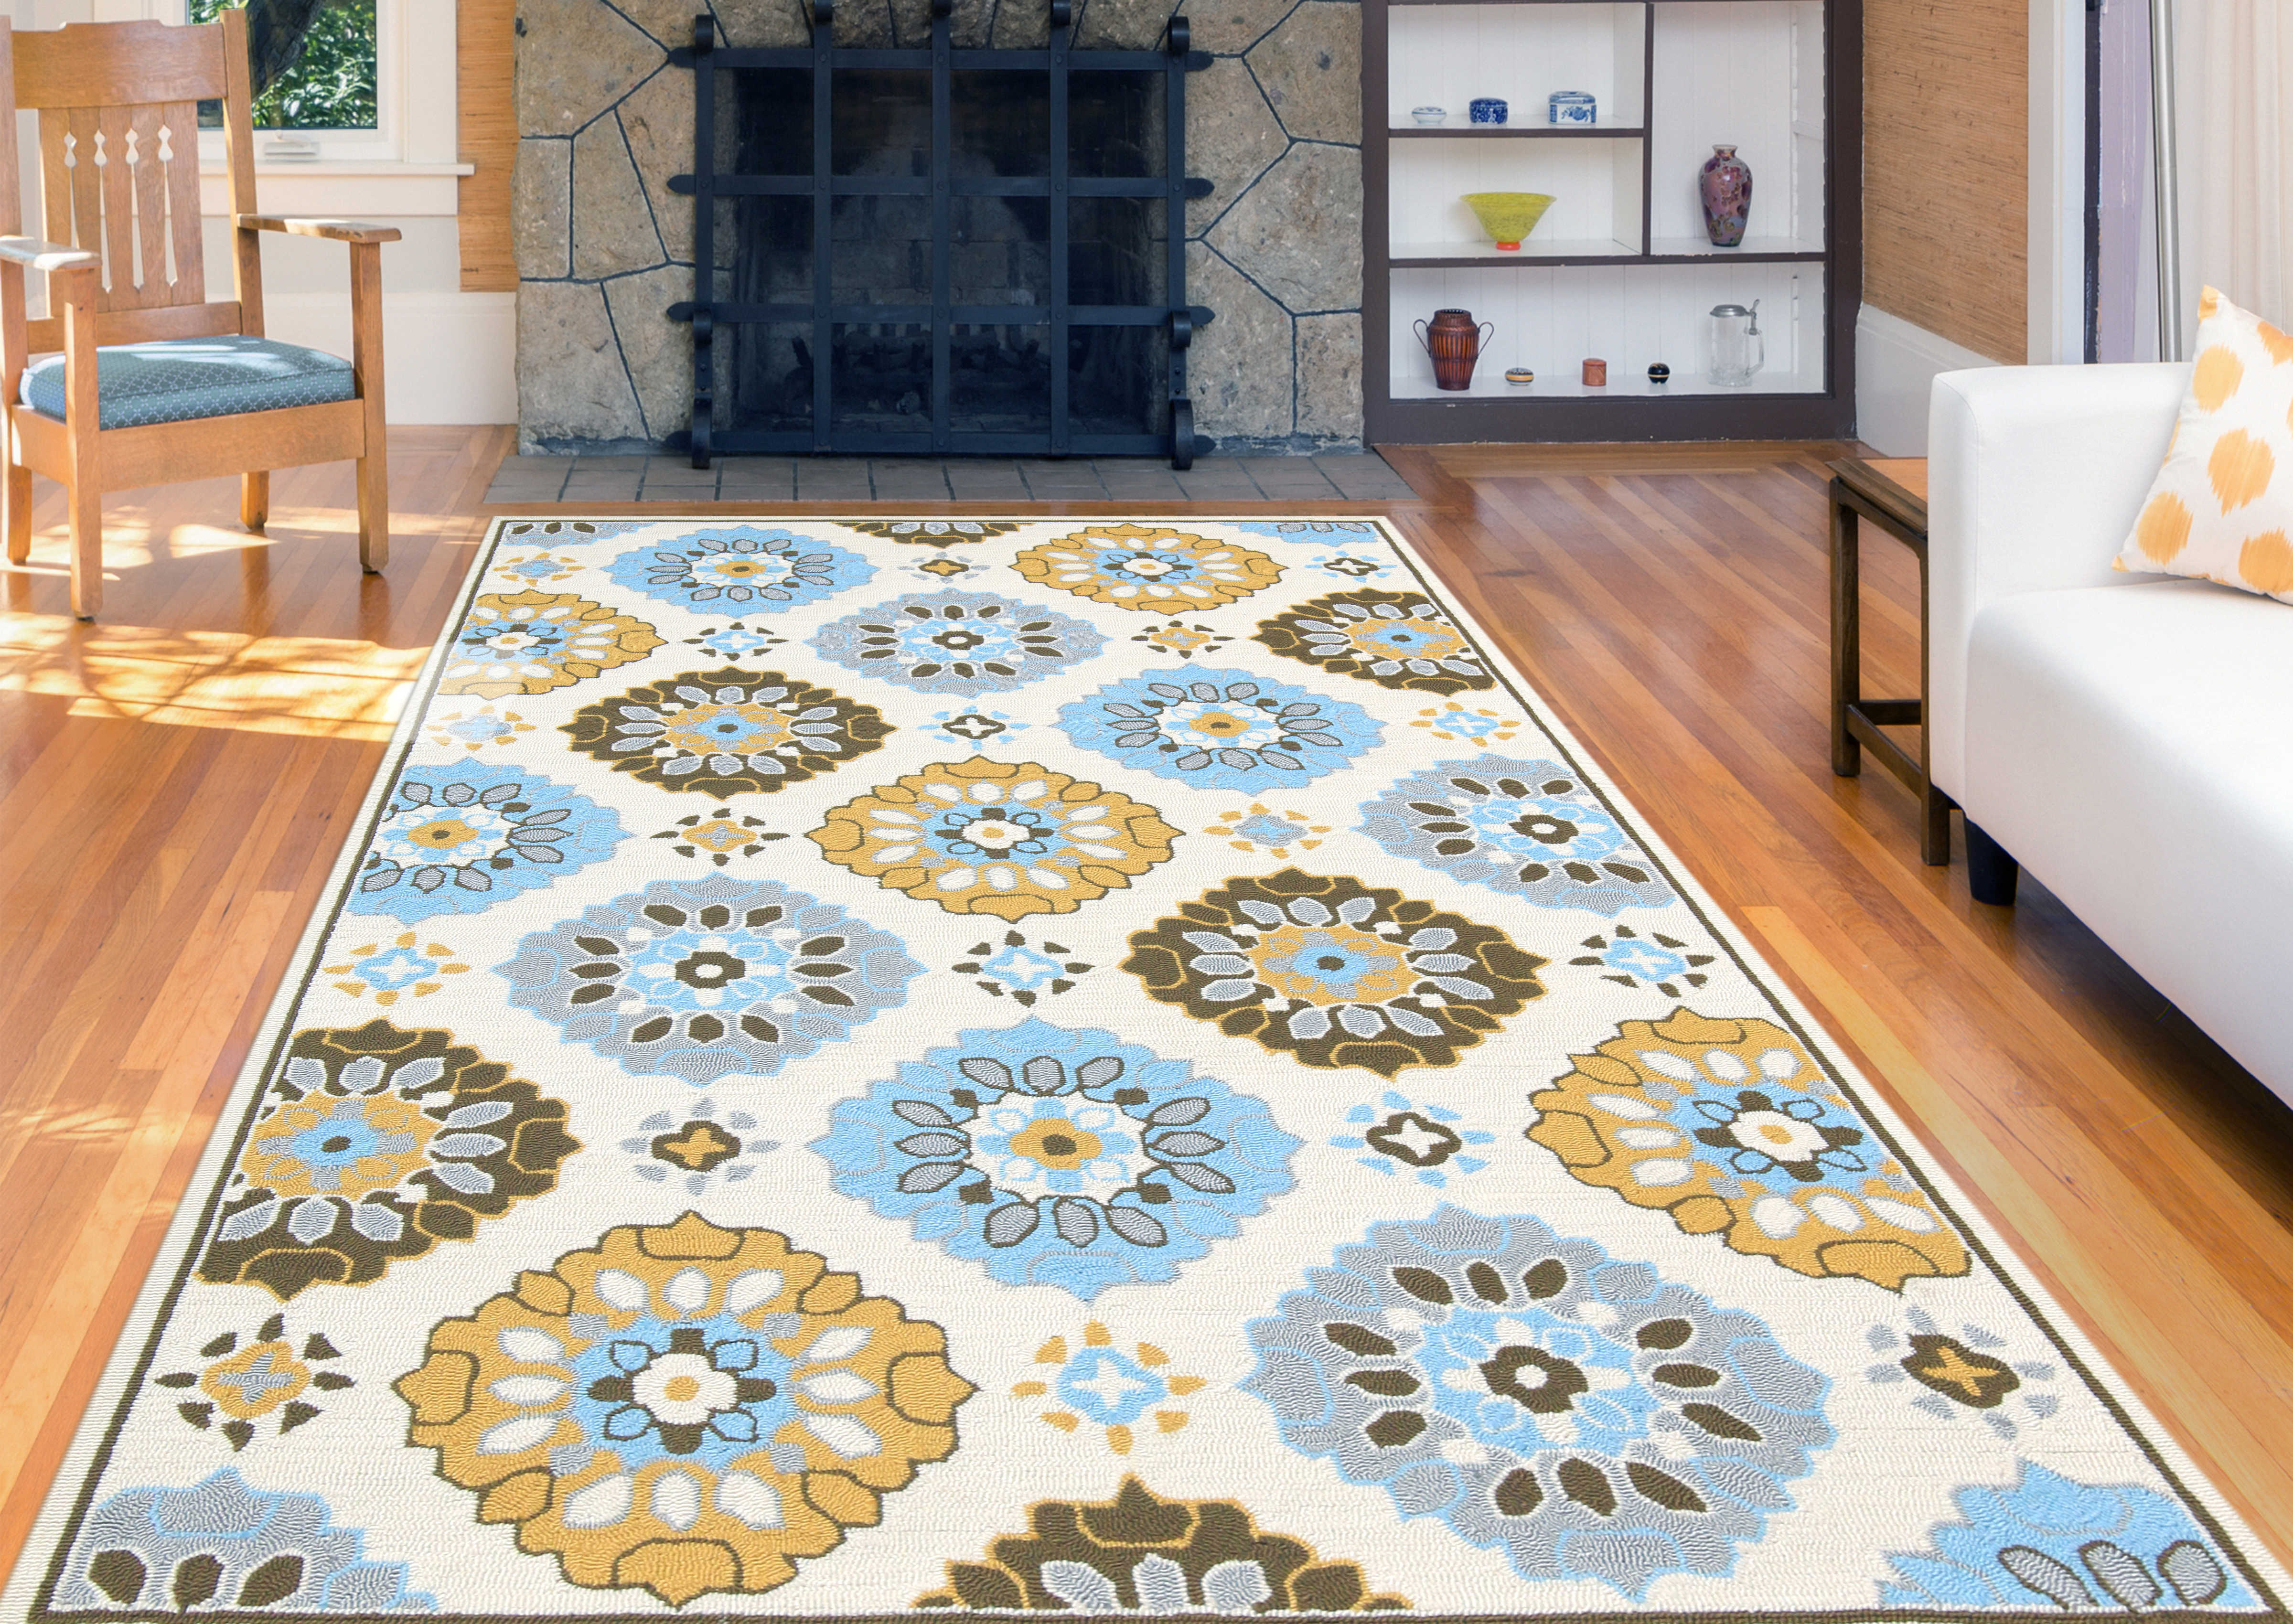 Amer Rugs Piazza Yellow Blue Brown Gray Ivory Tan Rectangular Area Rug